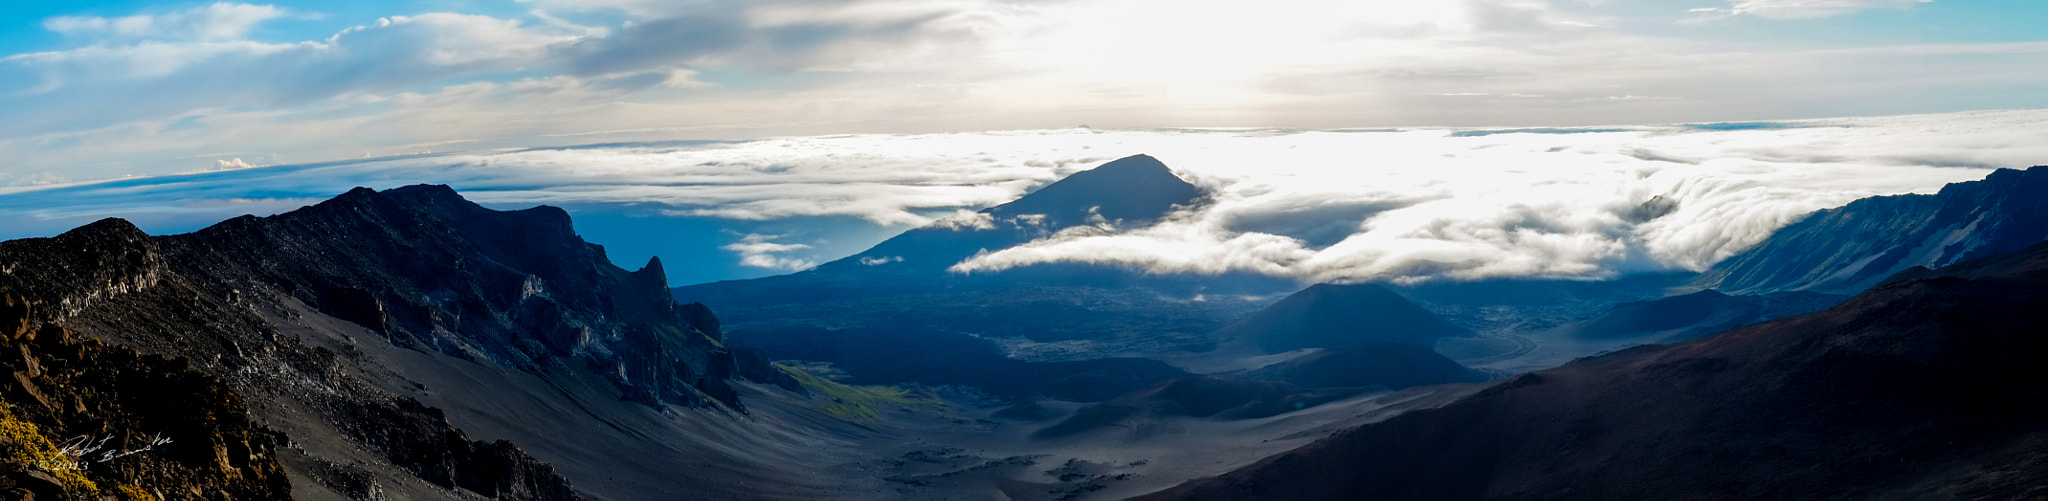 Photograph Mt Haleakala by Rob Bannister on 500px